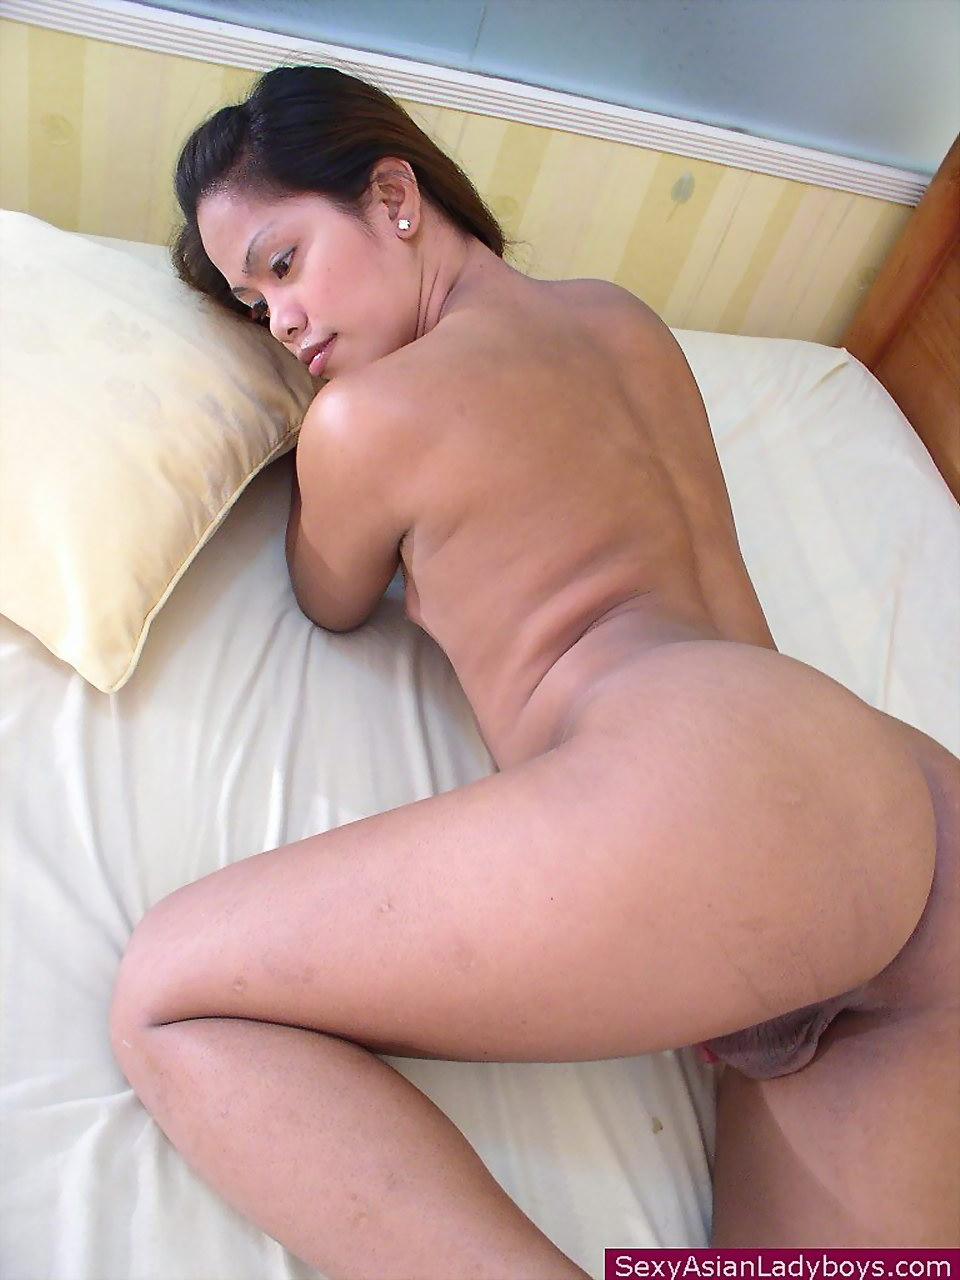 Naked asian trannies remarkable, rather